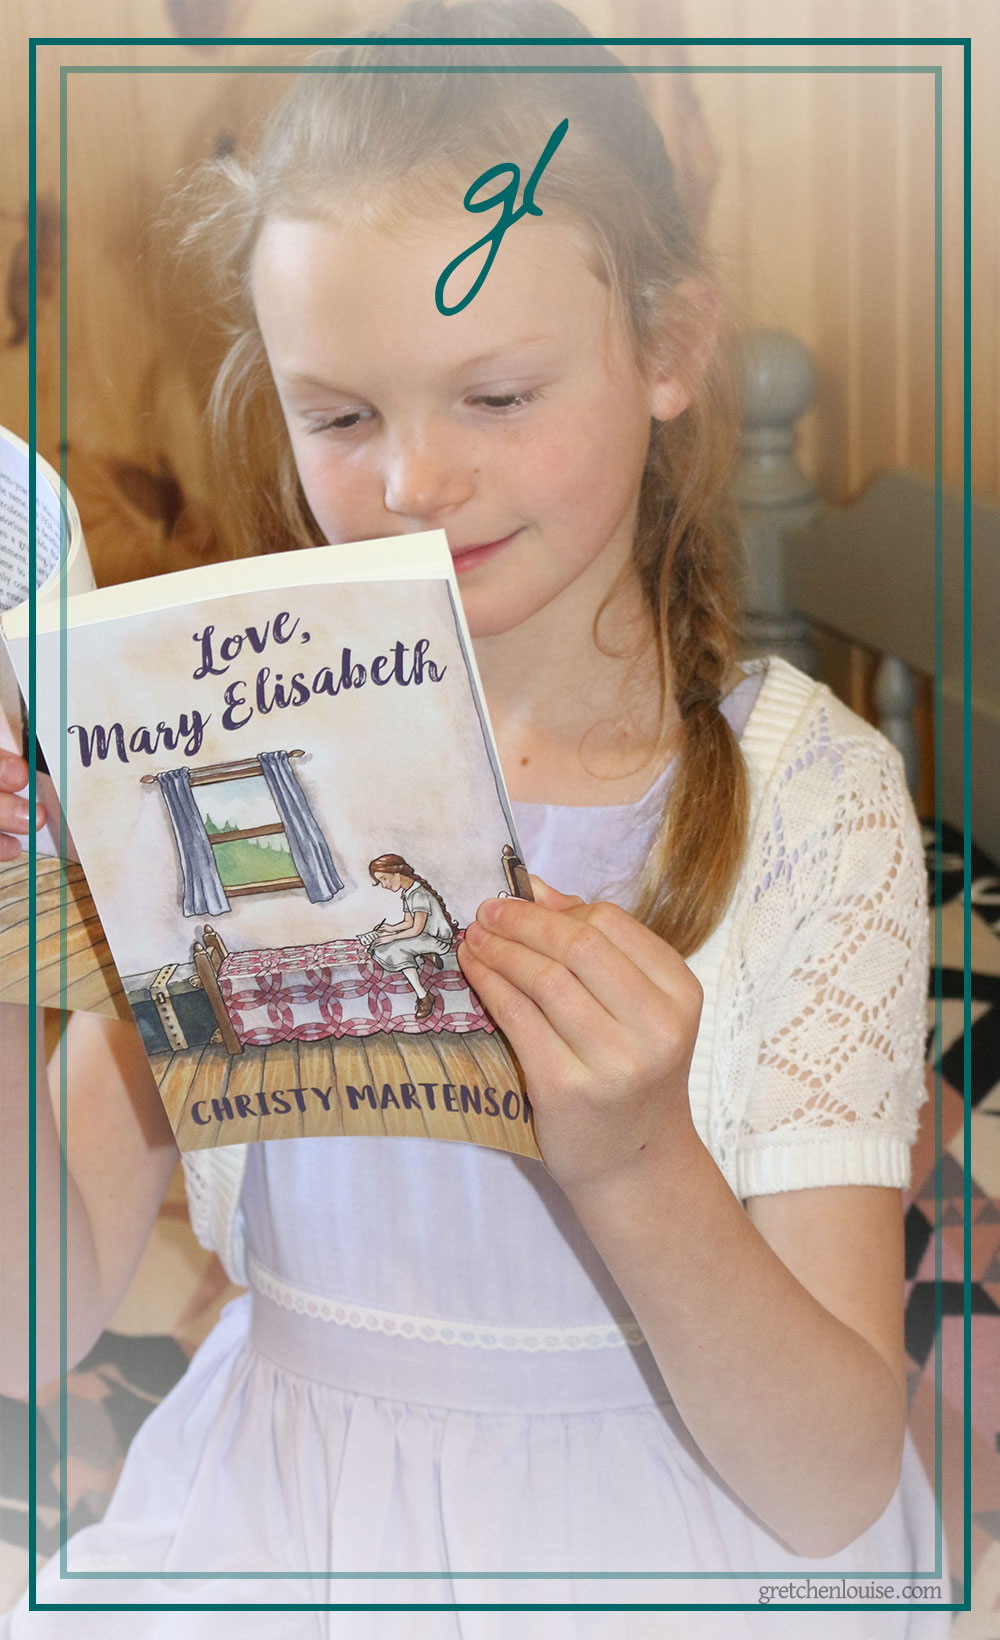 <em>Love, Mary Elisabeth</em>: a delightful read for all ages via @GretLouise